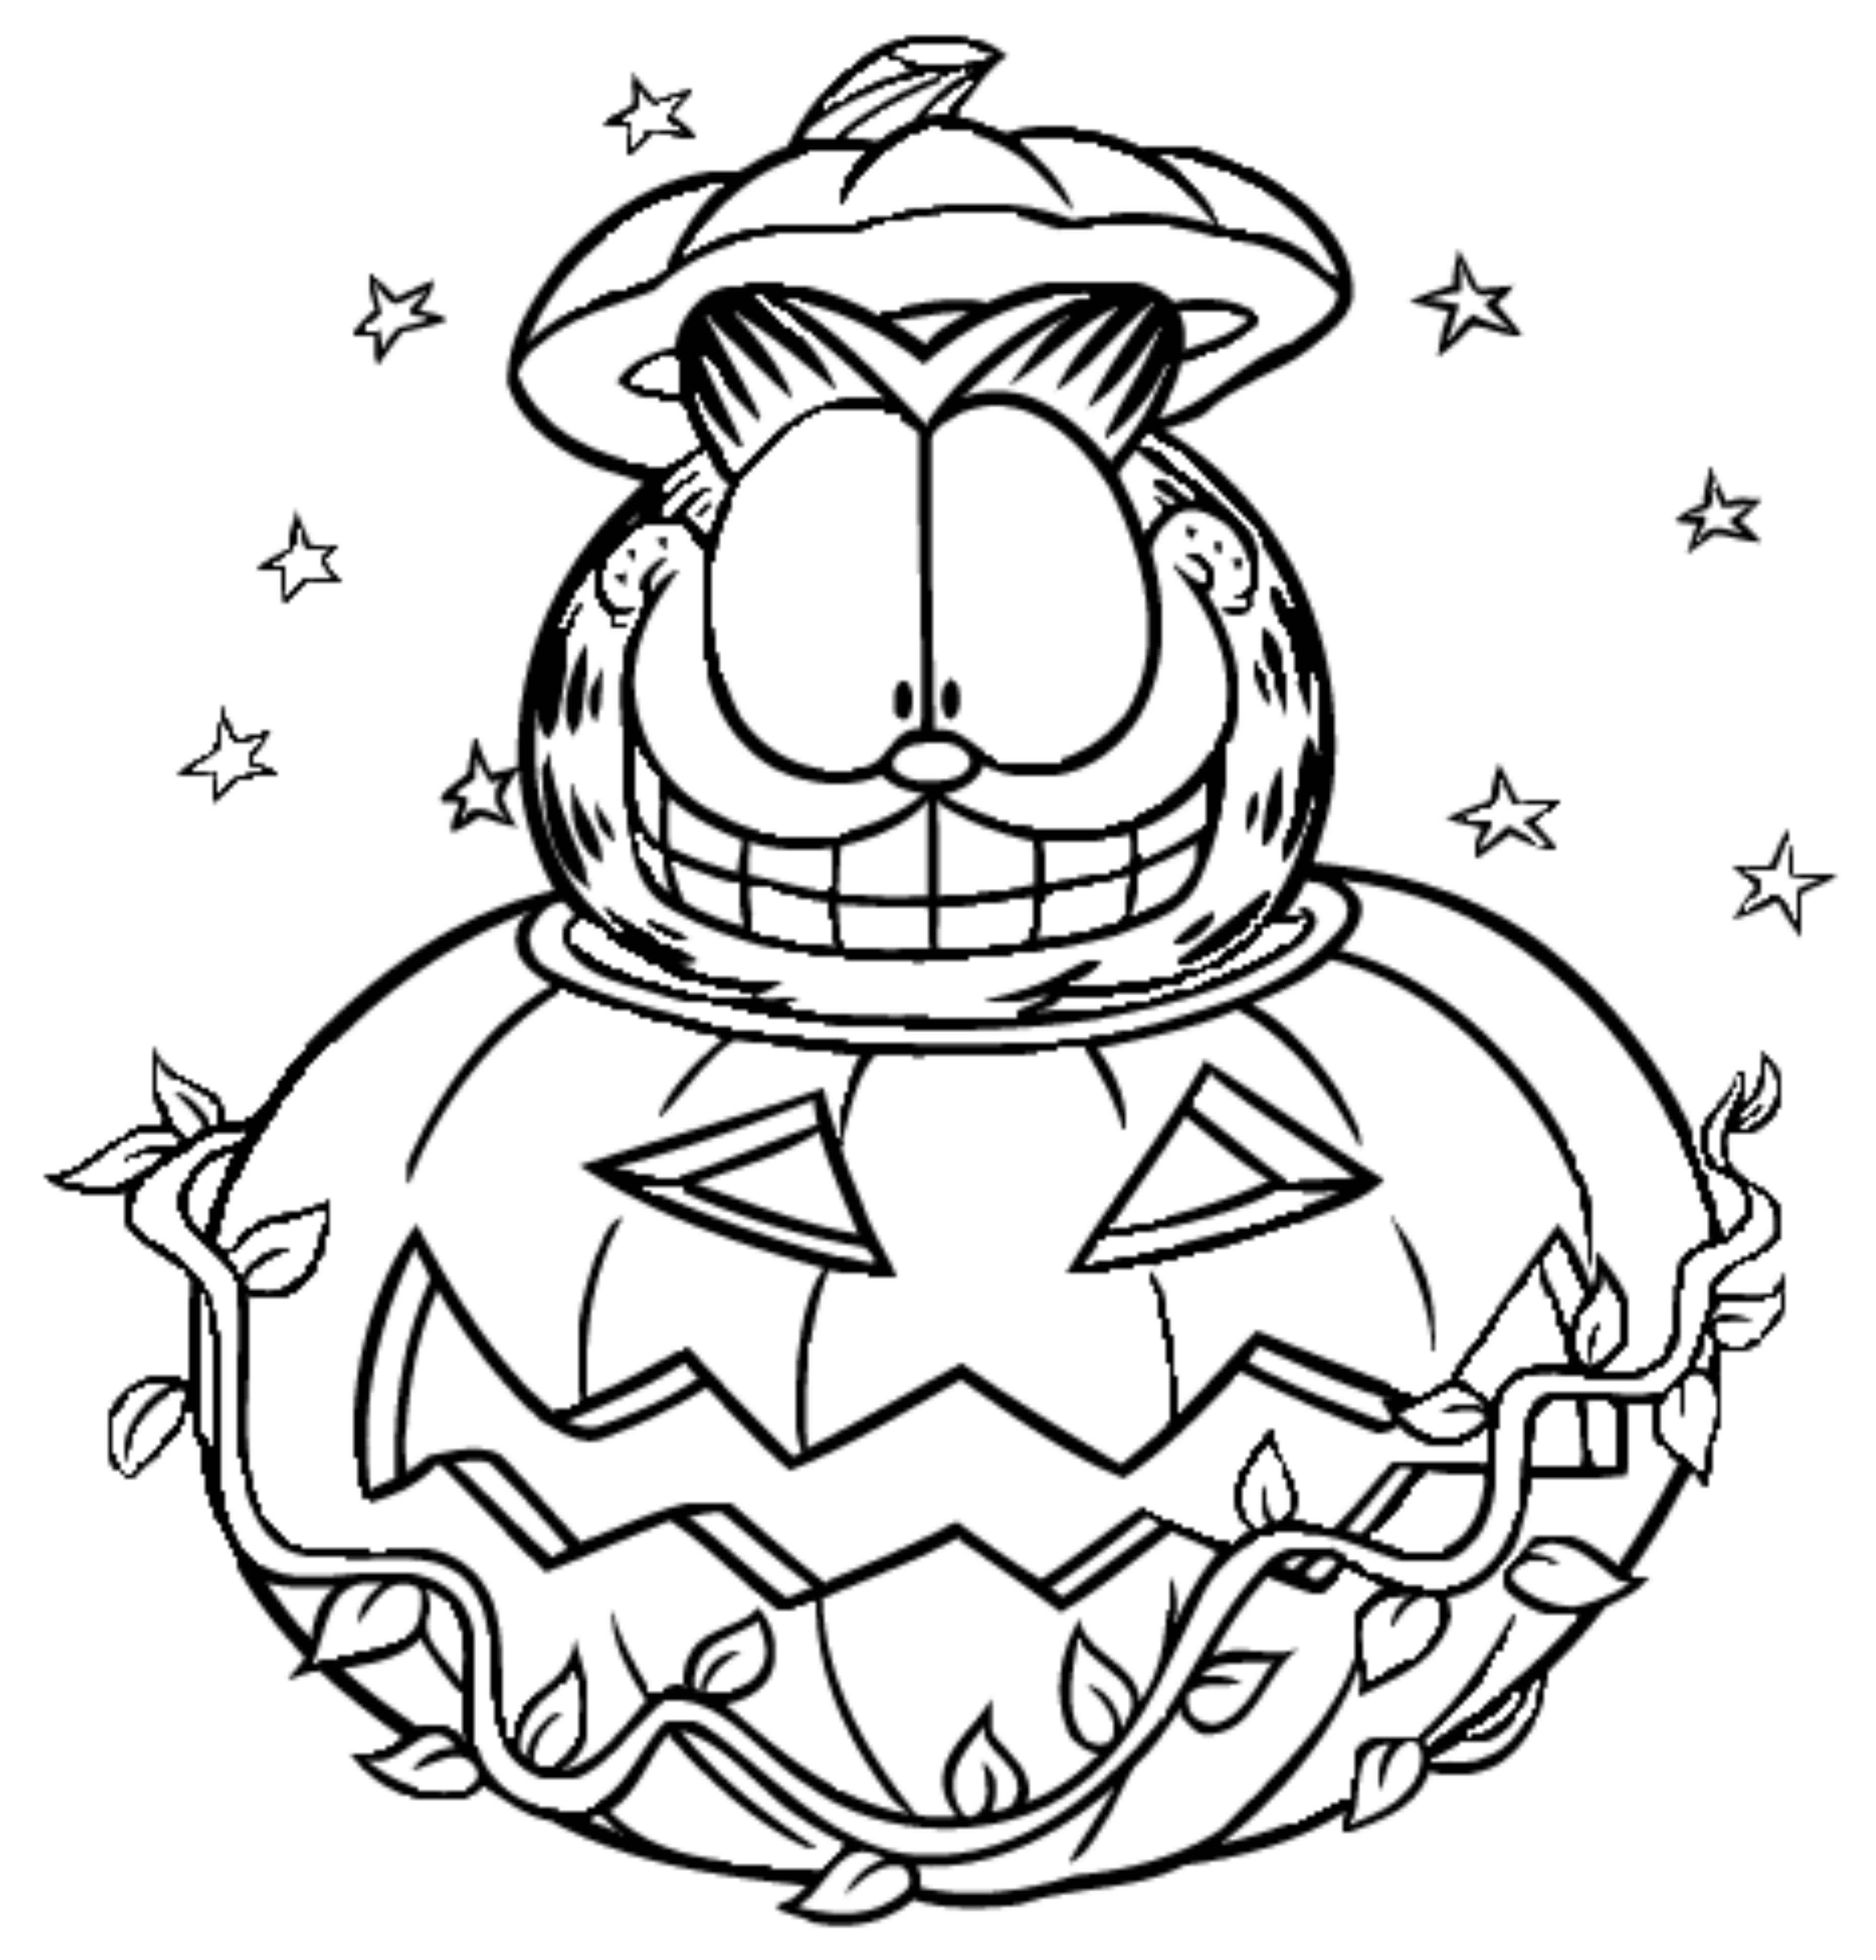 coloring page halloween garfield pumpkin - Garfield Halloween Coloring Pages